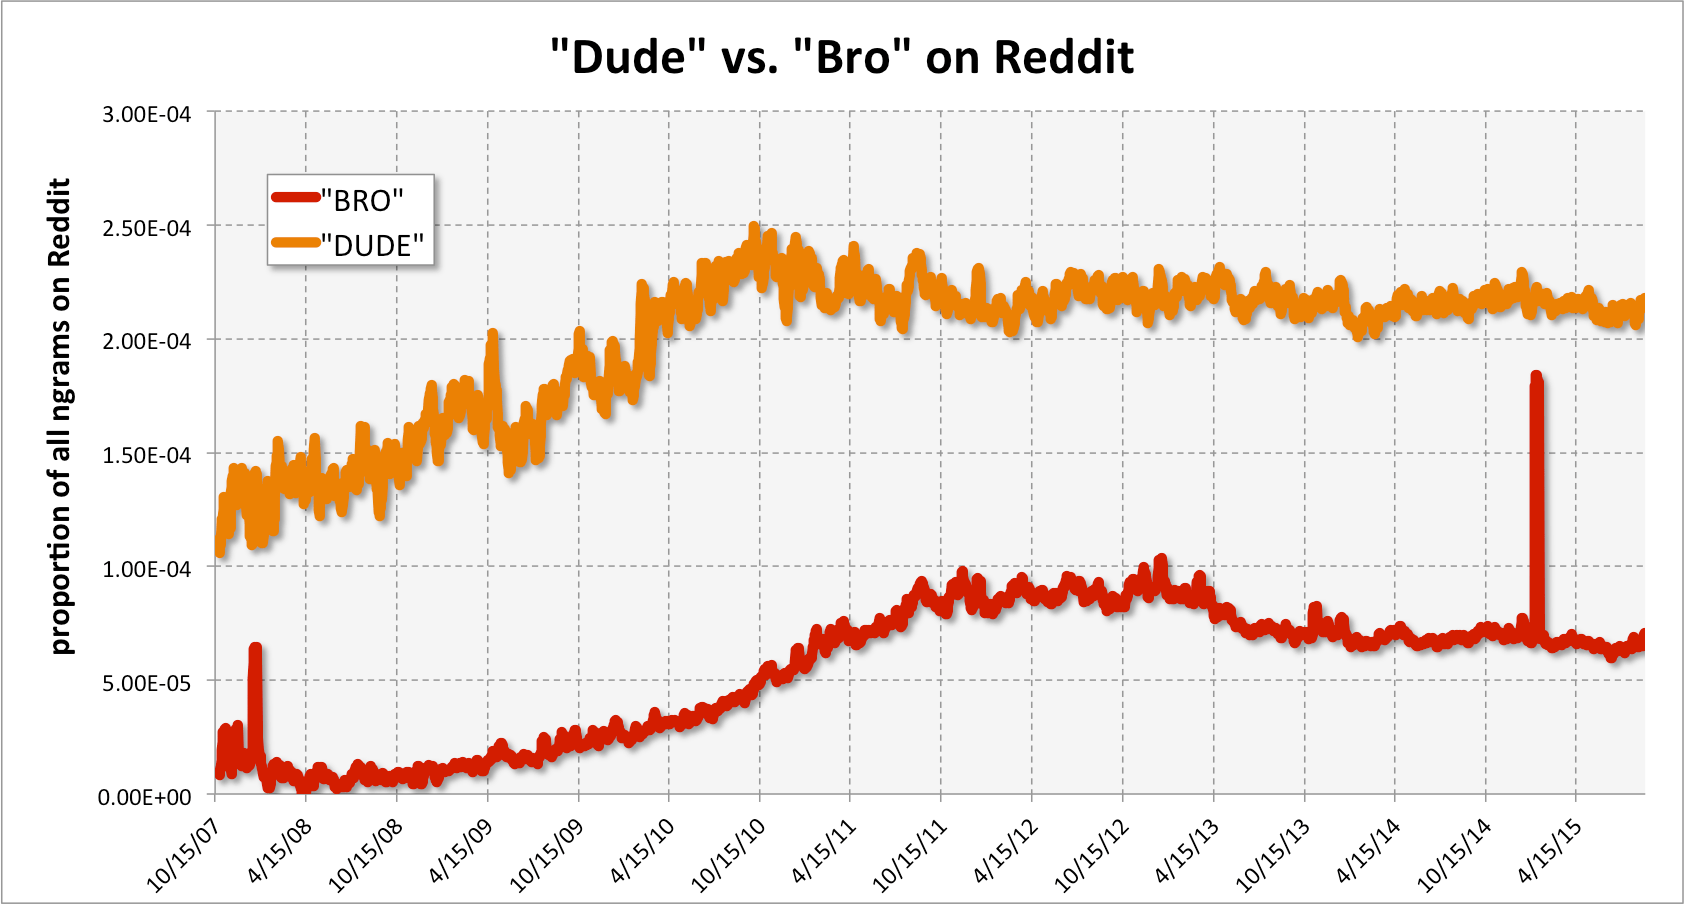 Dude vs. Bro